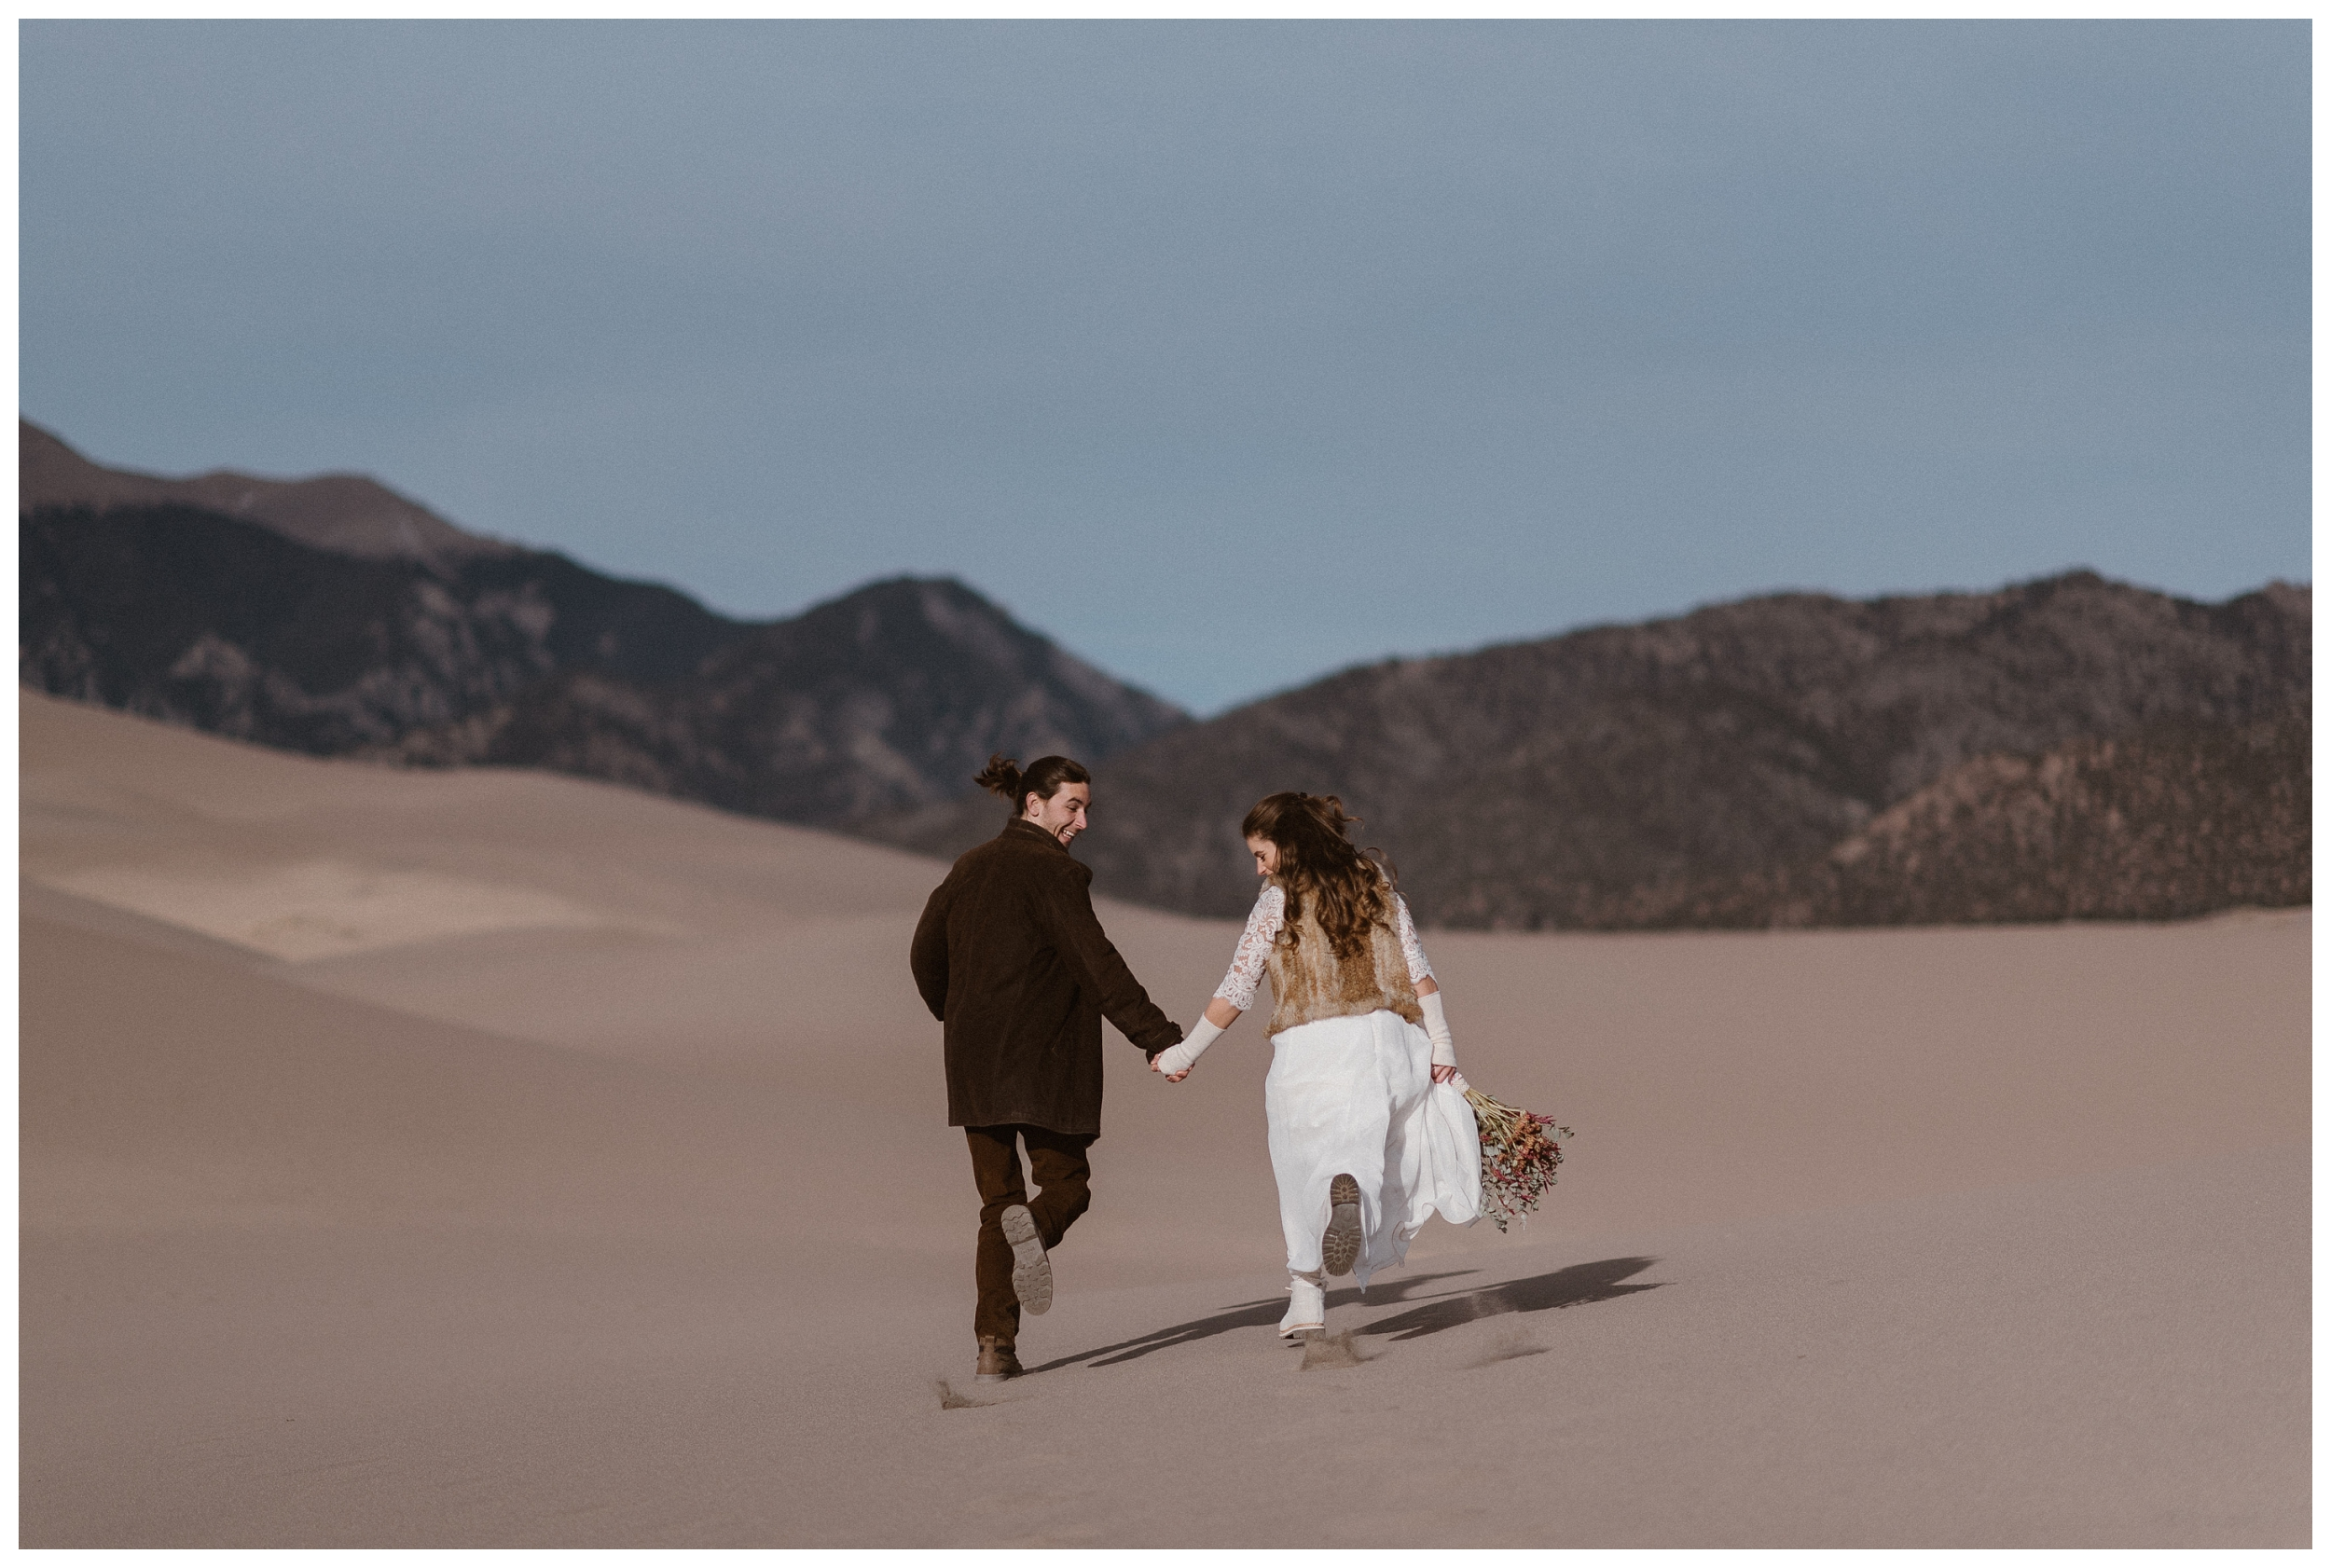 Olivia and Justin run hand in hand as bride and groom before their winter wedding ceremony at the Great Sand Dunes. Photo by Maddie Mae Photo, Adventures Instead.